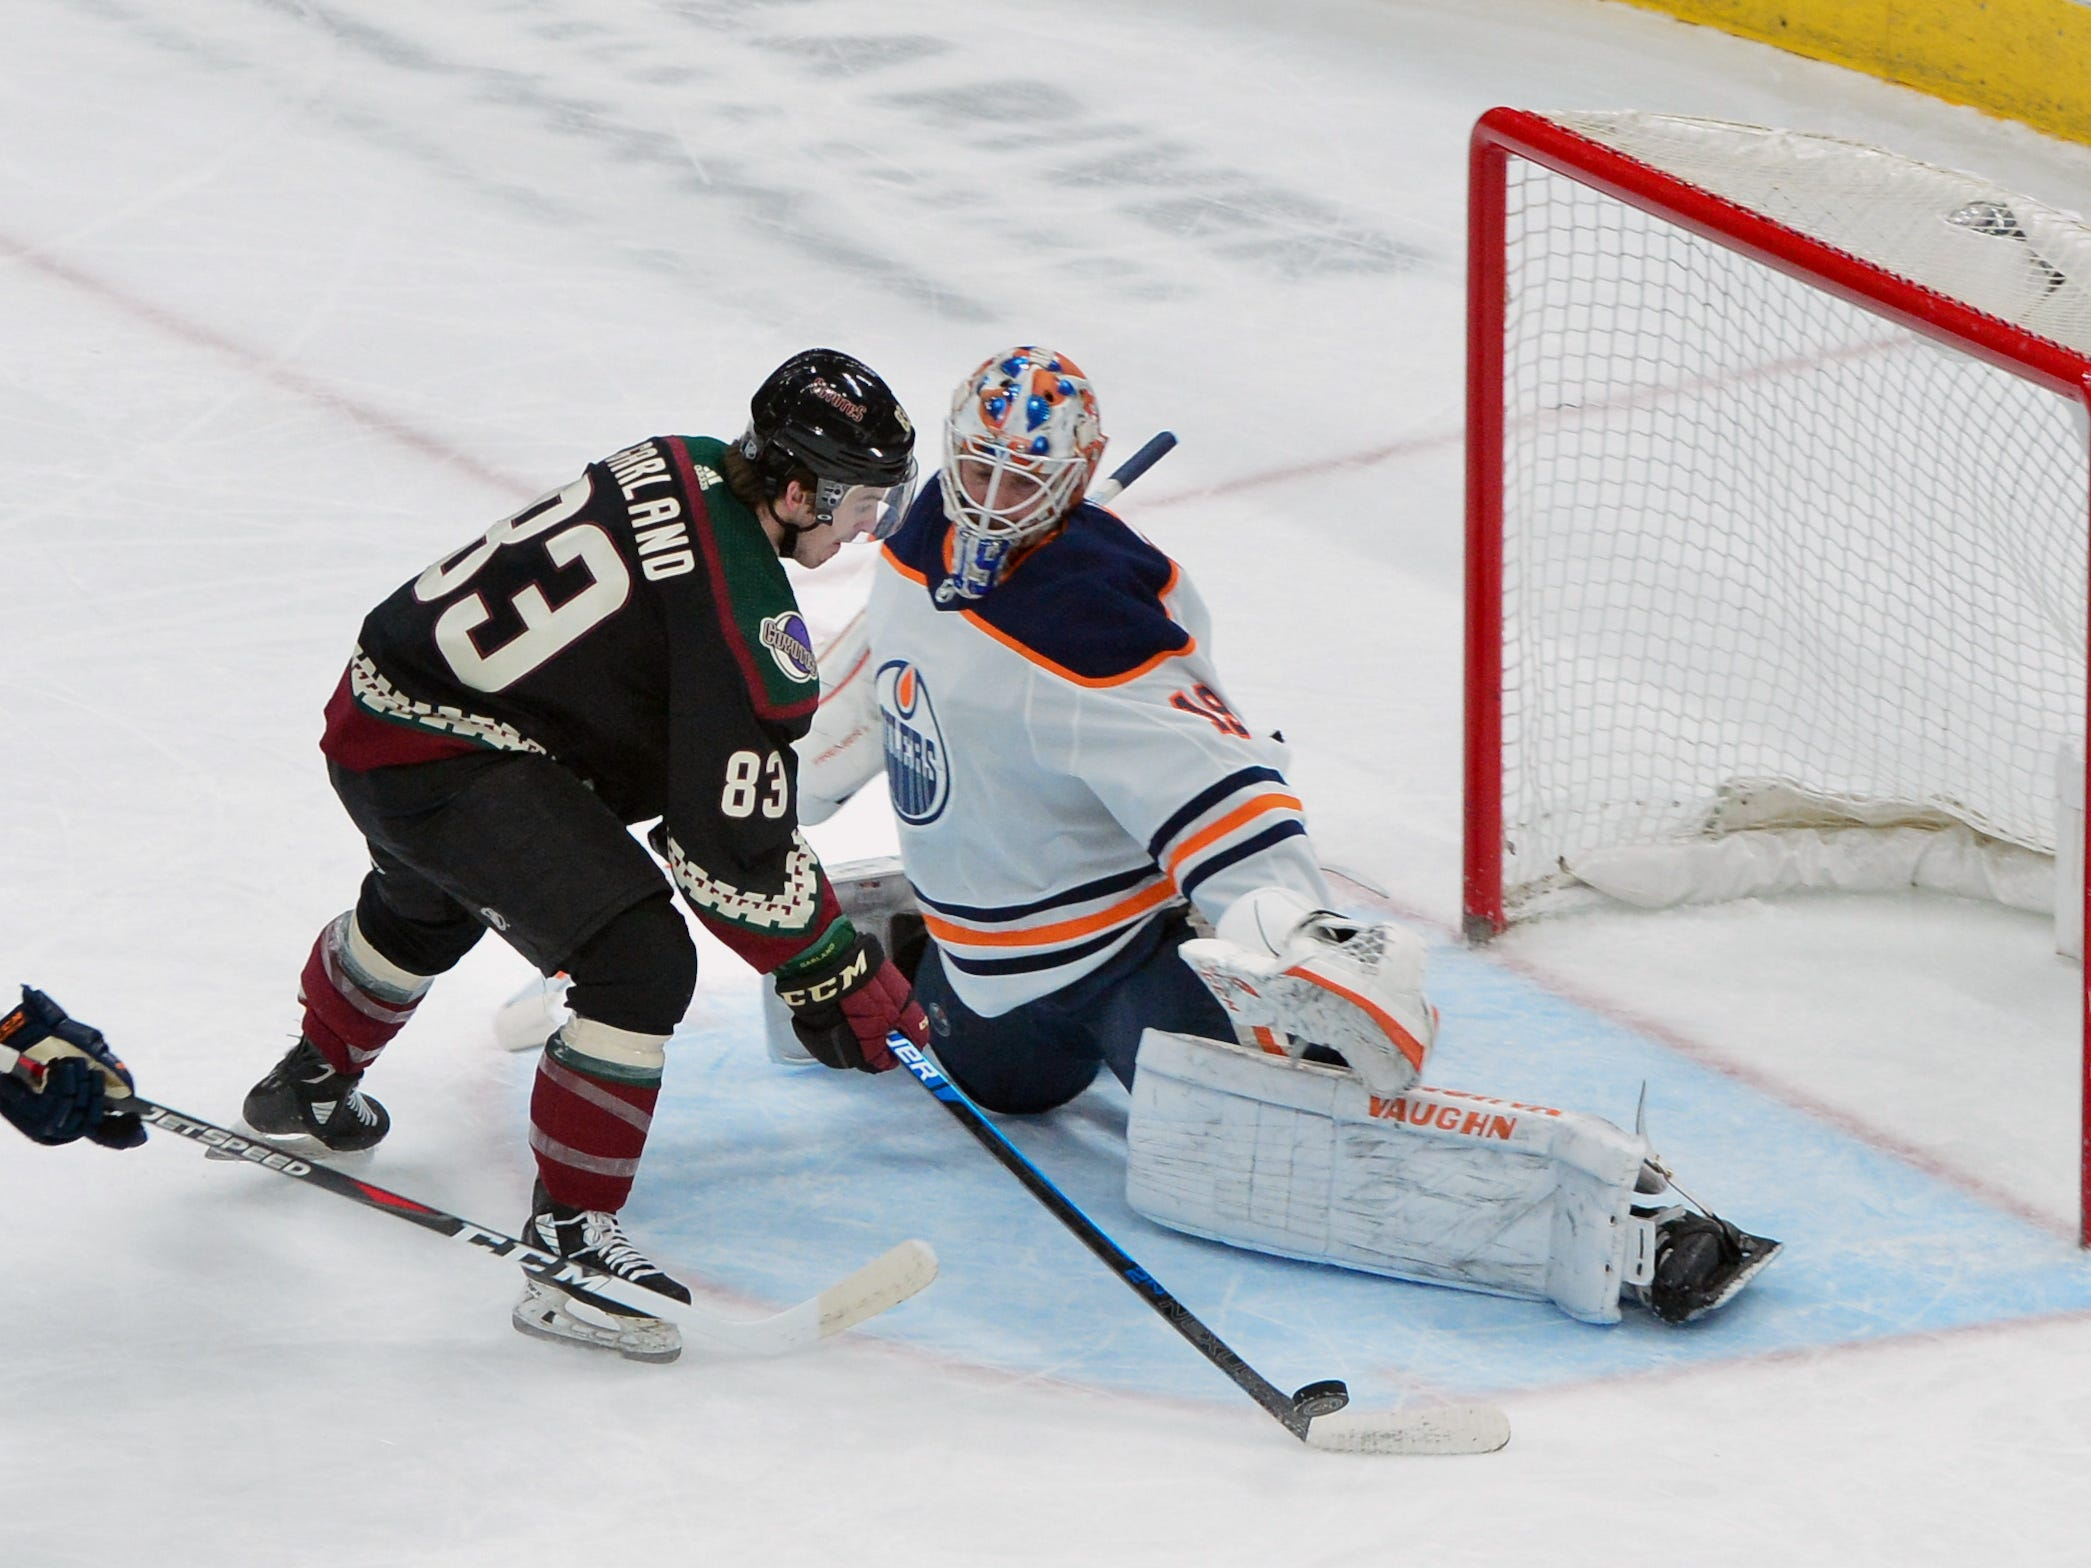 Mar 16, 2019; Glendale, AZ, USA; Edmonton Oilers goaltender Mikko Koskinen (19) makes a save against Arizona Coyotes right wing Conor Garland (83) during the first period at Gila River Arena.